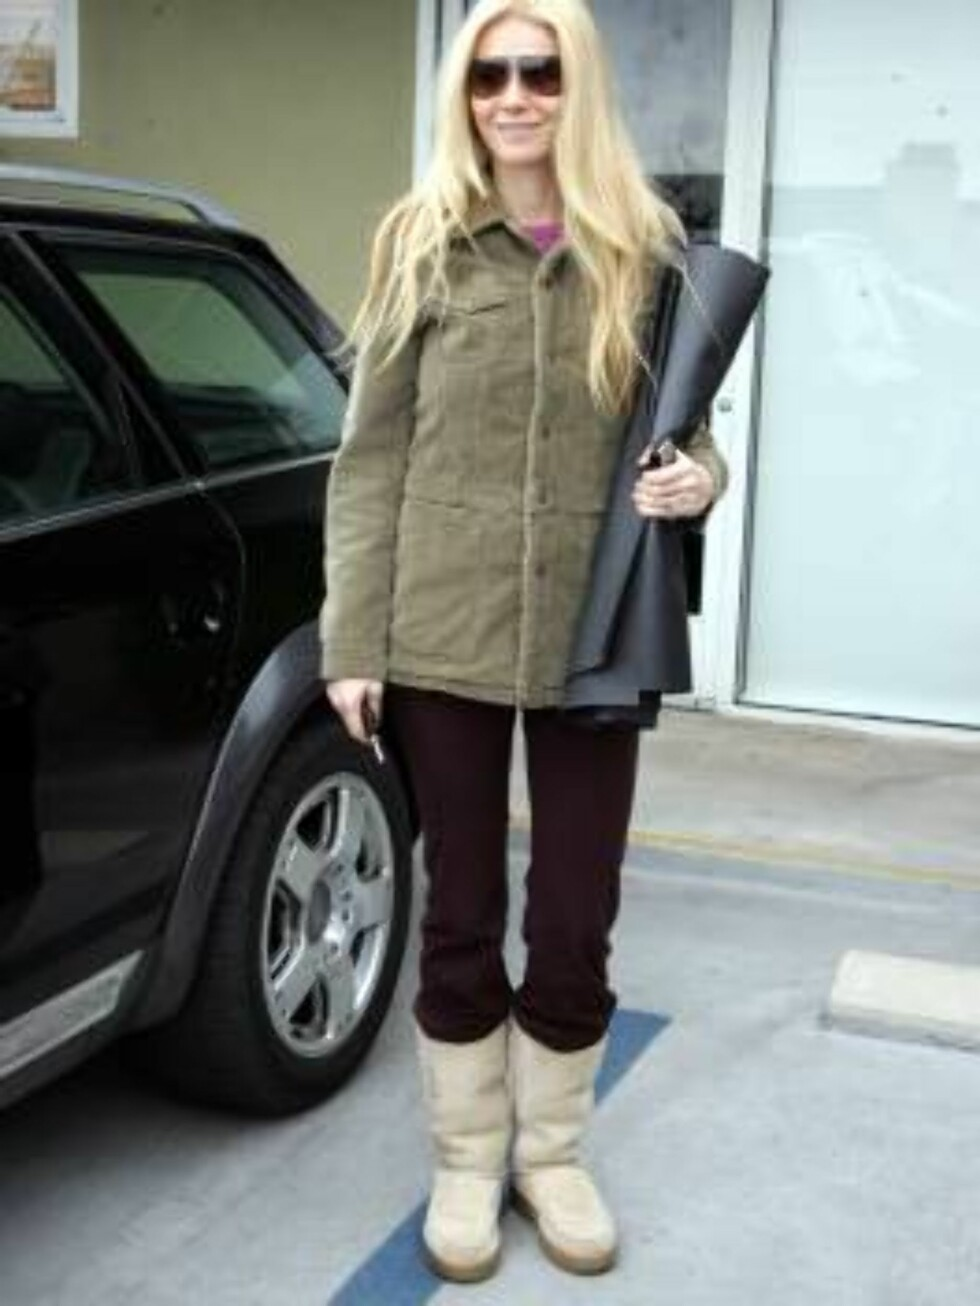 Gwyneth Paltrow going to yoga class in Santa Monica wearing uggs and carrying her yoga mat. February 27, 2005 X17agency exclusive  / ALL OVER PRESS Foto: All Over Press